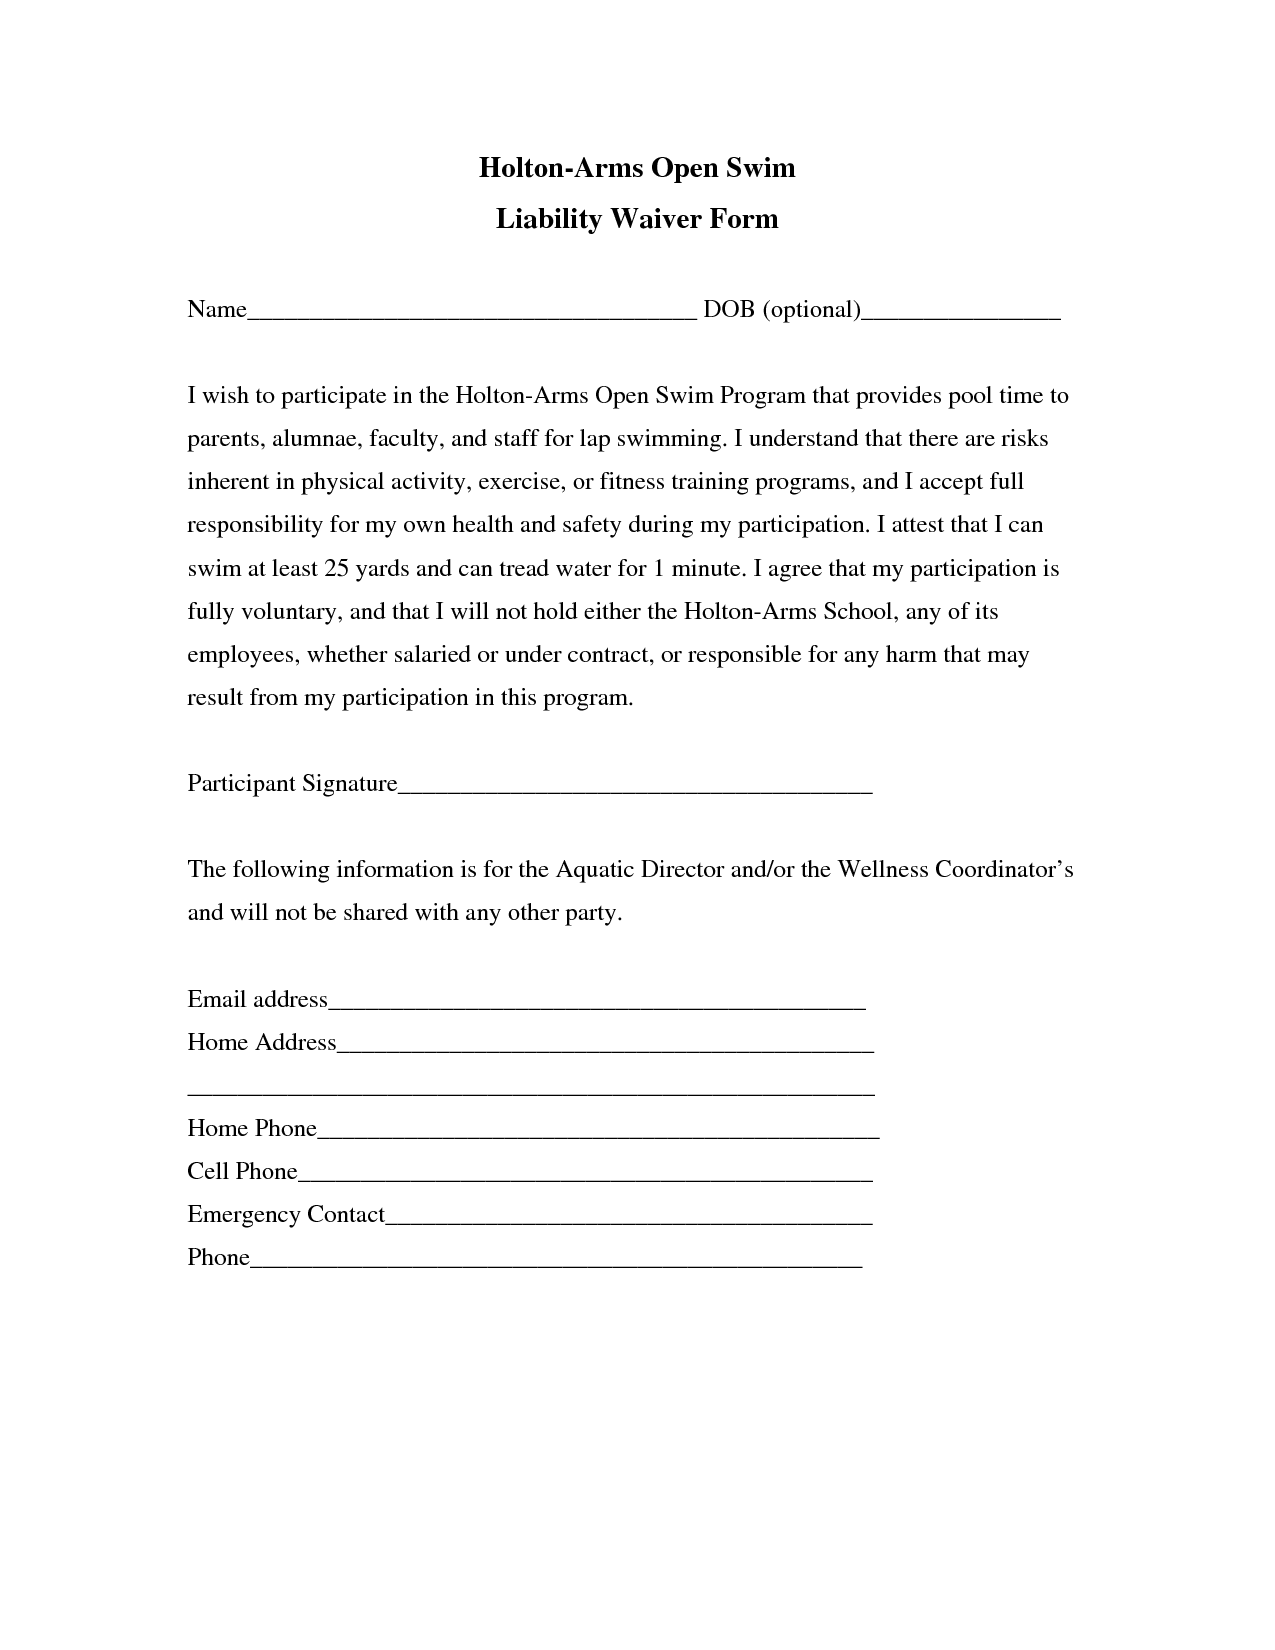 Awesome Liability Insurance: Liability Insurance Waiver Template   Liability  Release Form Template Inside Basic Liability Waiver Form